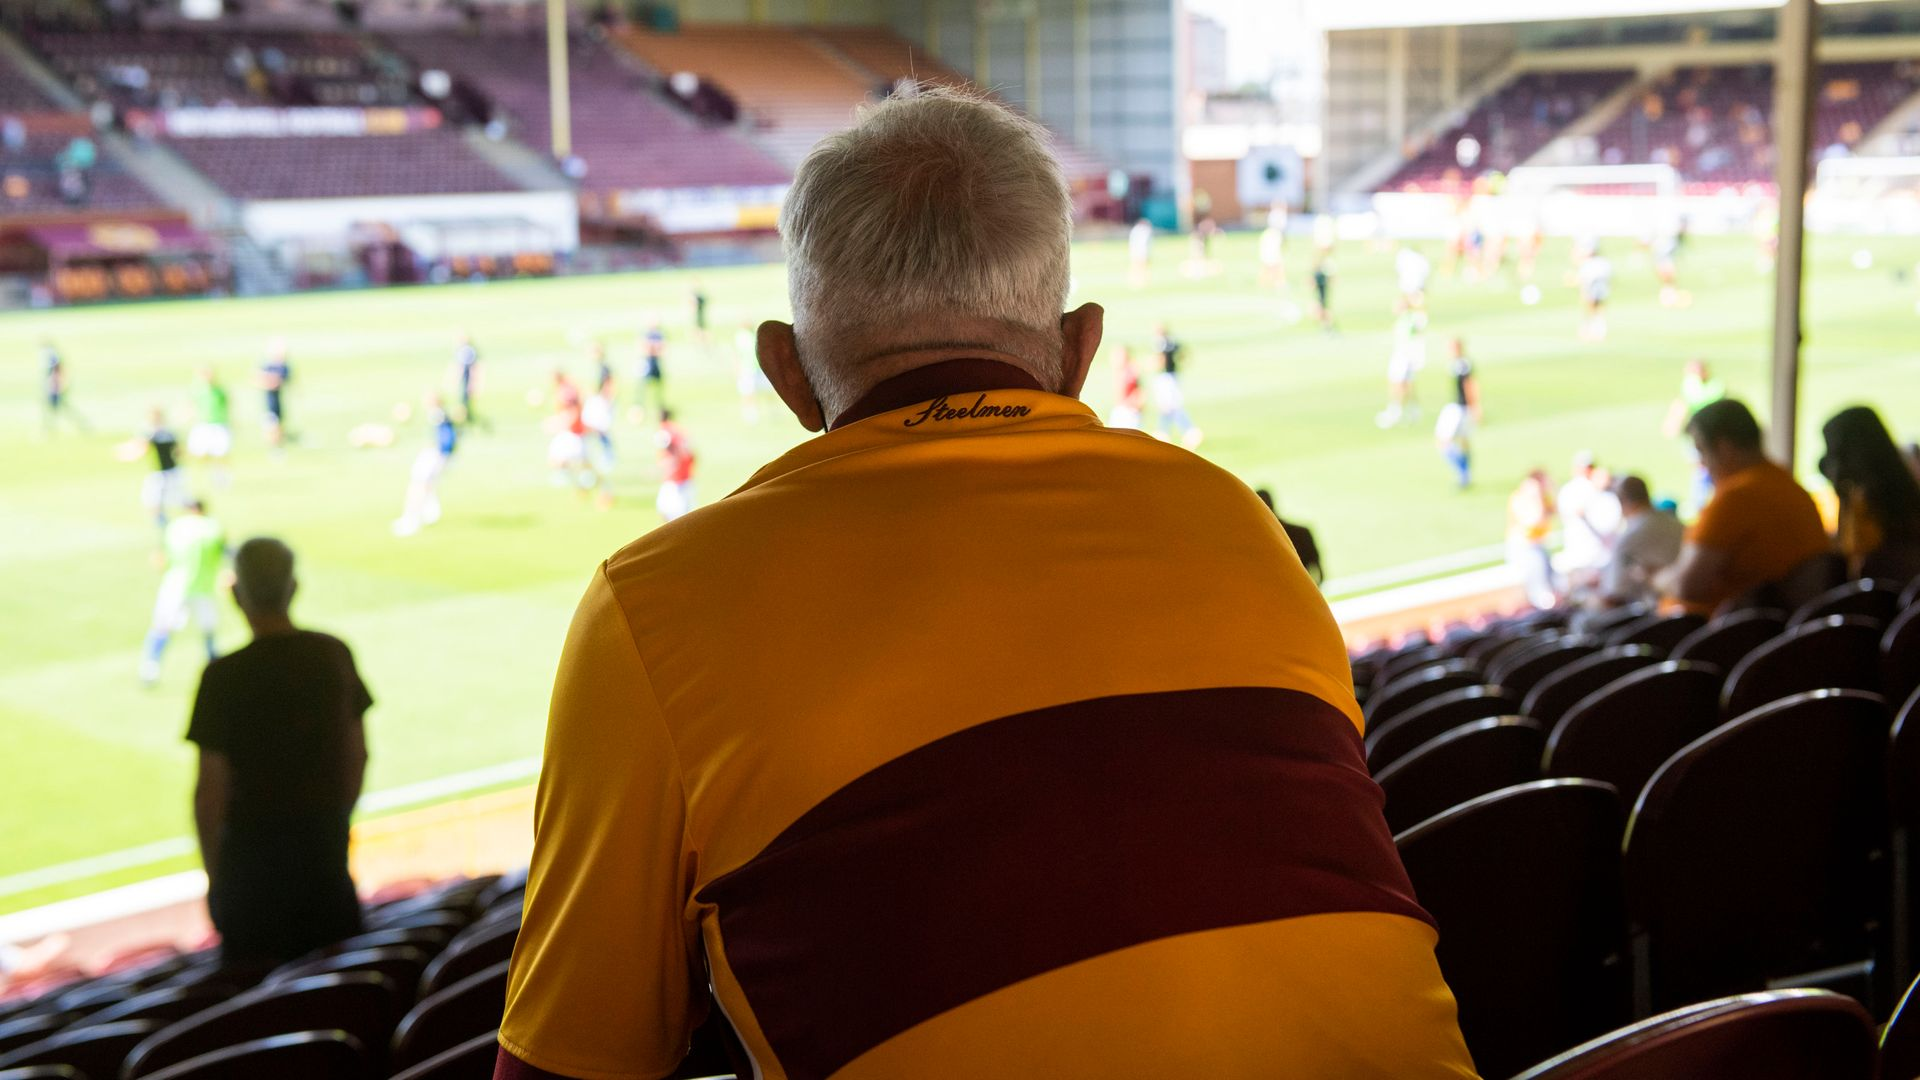 Motherwell doing things differently